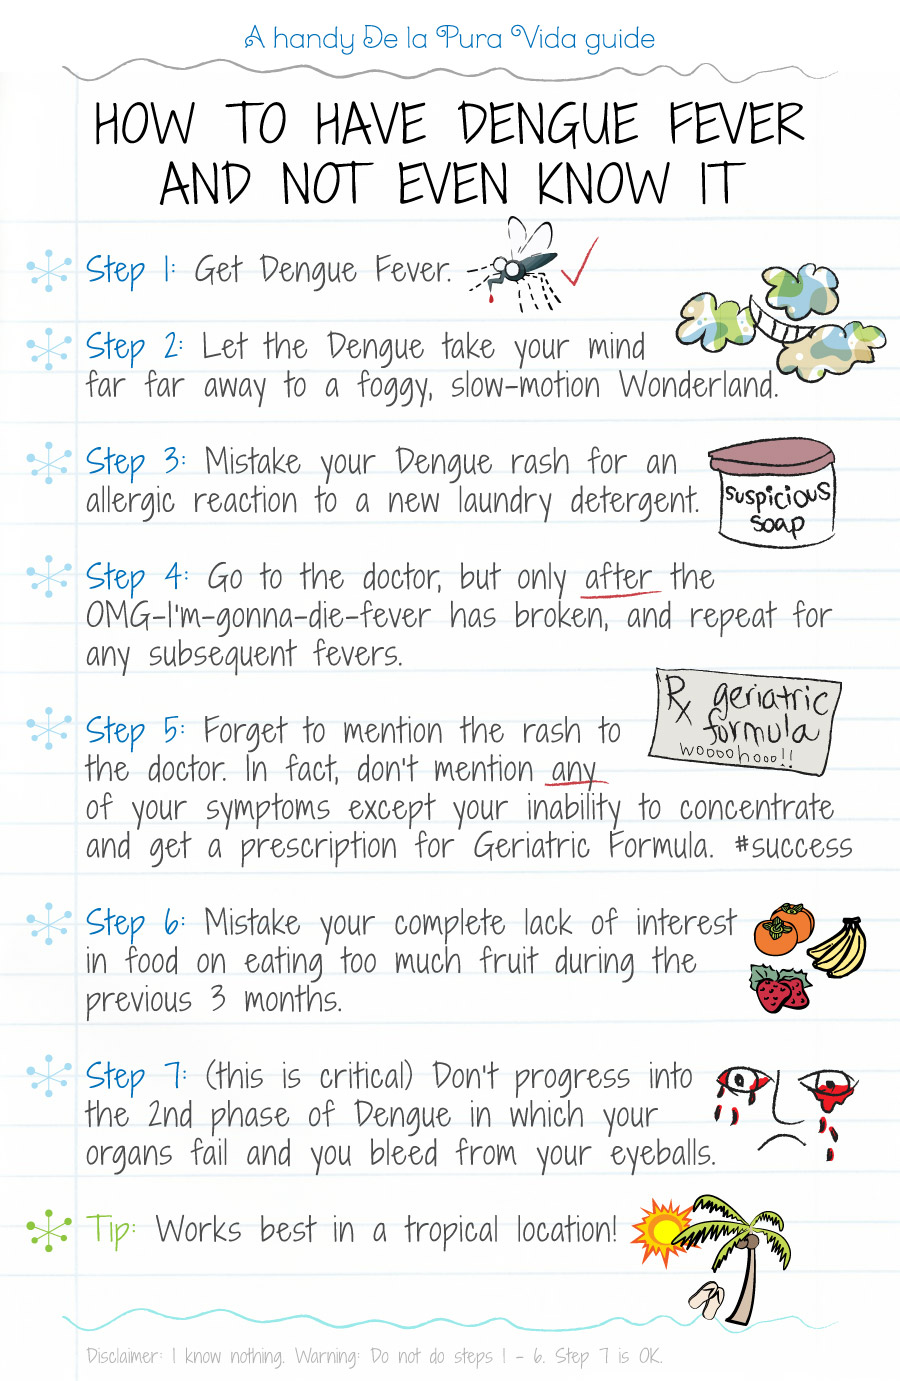 How To Have Dengue Fever And Not Even Know It